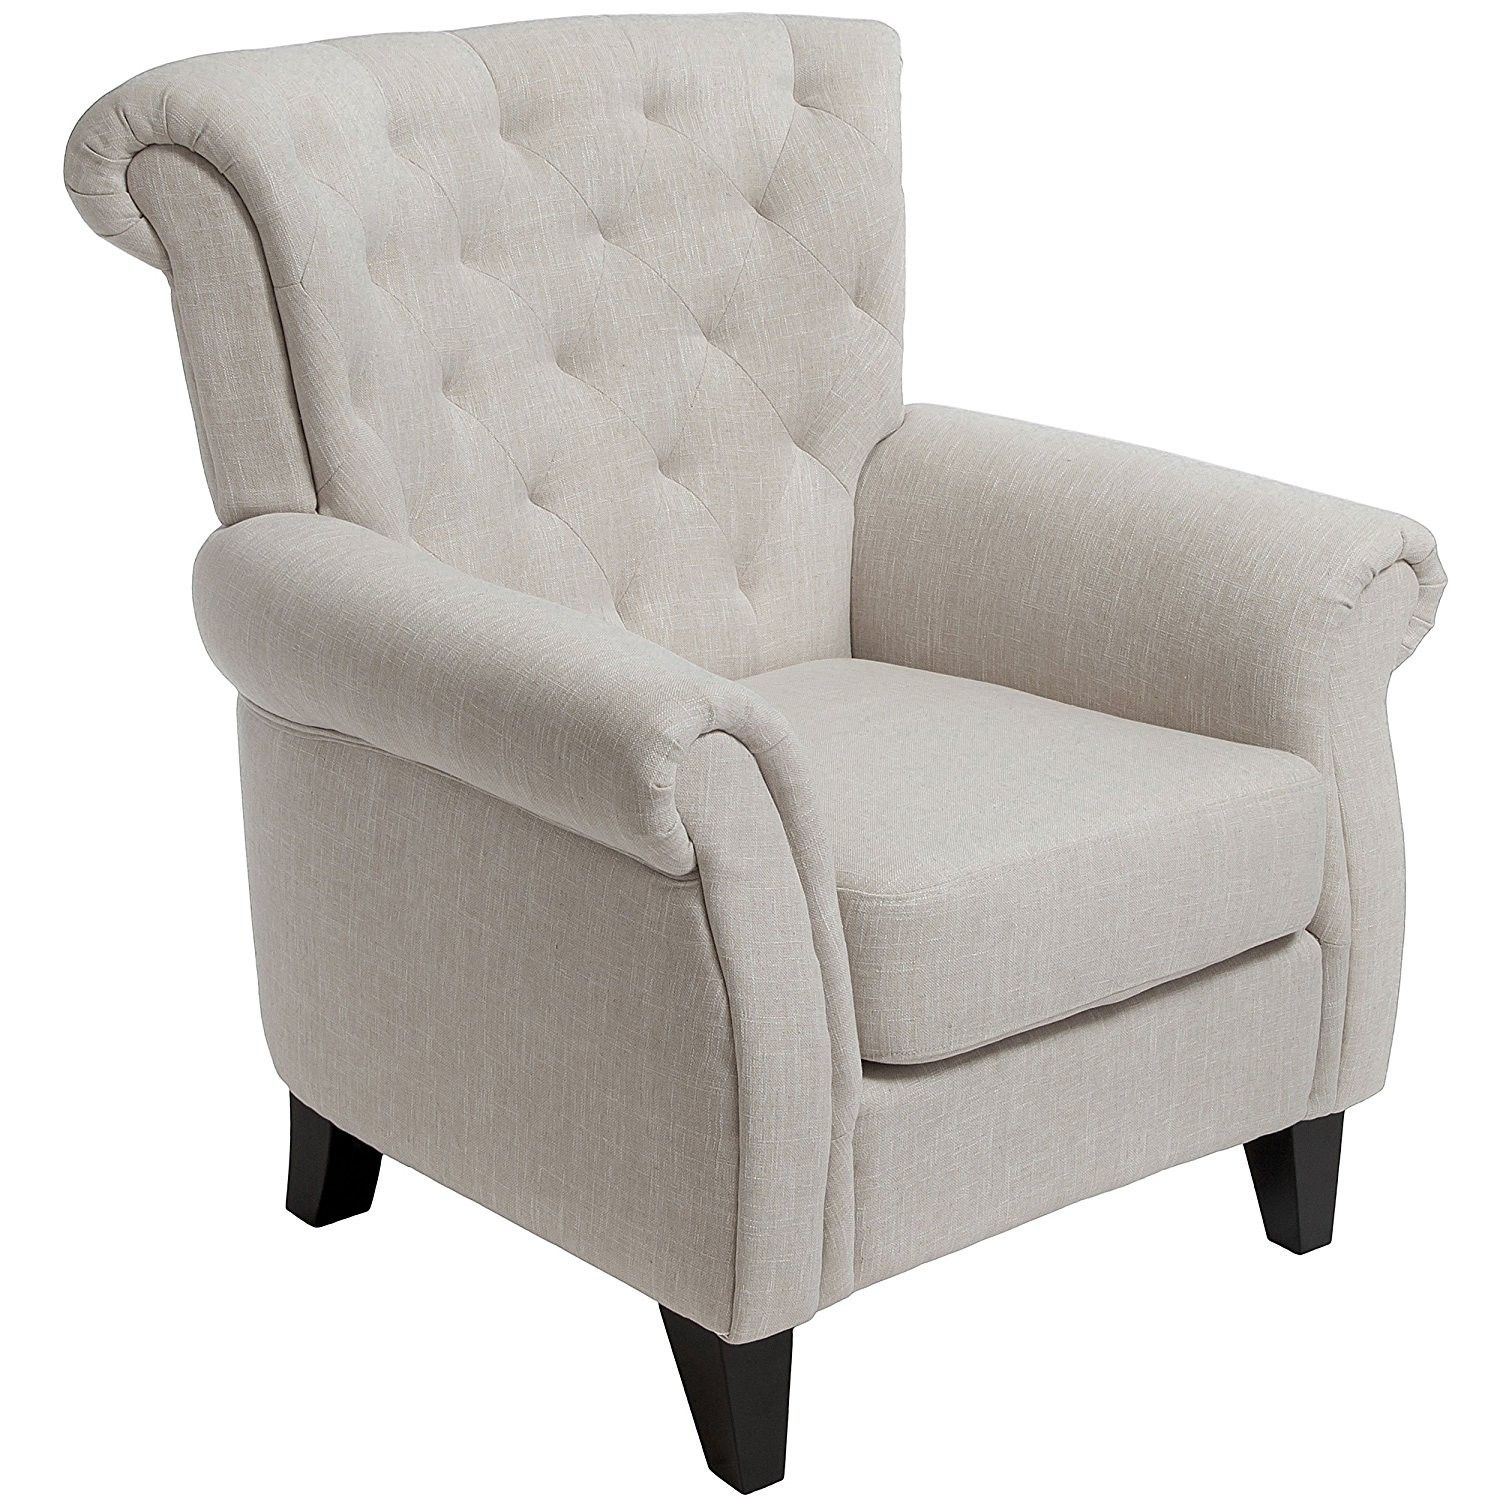 Arm chair small bedroom chairs ikea small accent chair with ottoman cute accent chairs office accent chairs small comfortable chairs for small spaces small